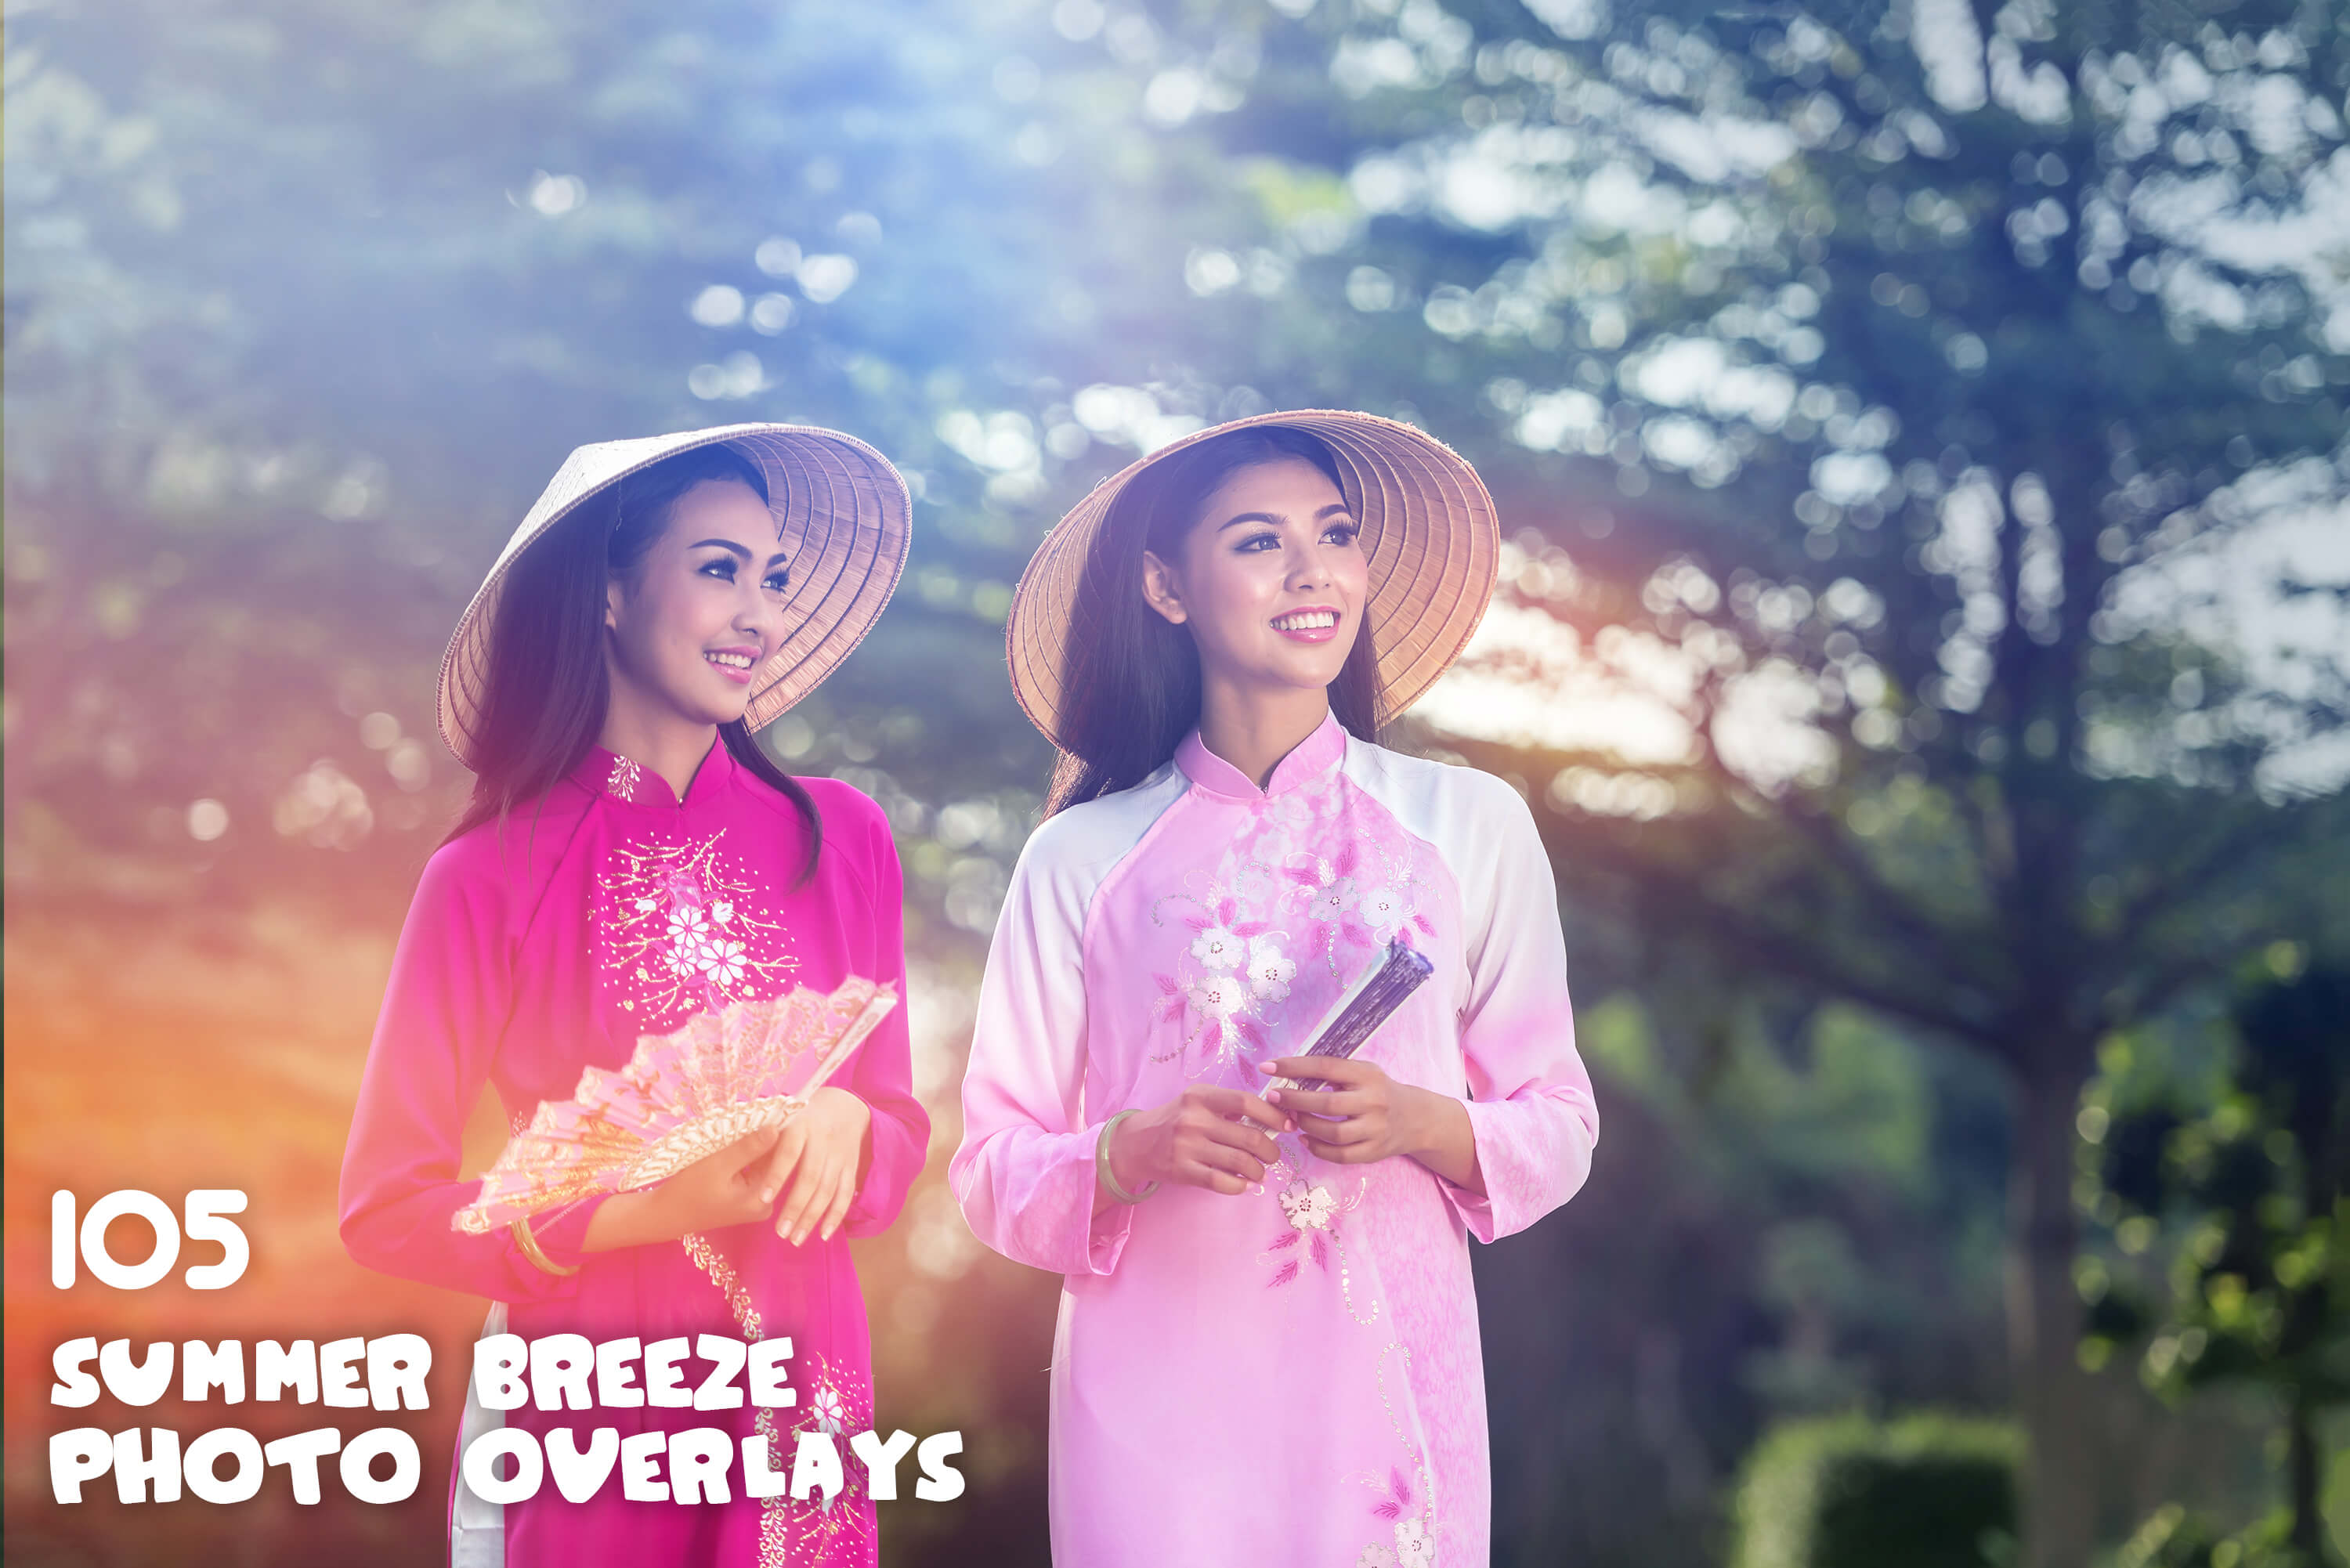 photo overlays